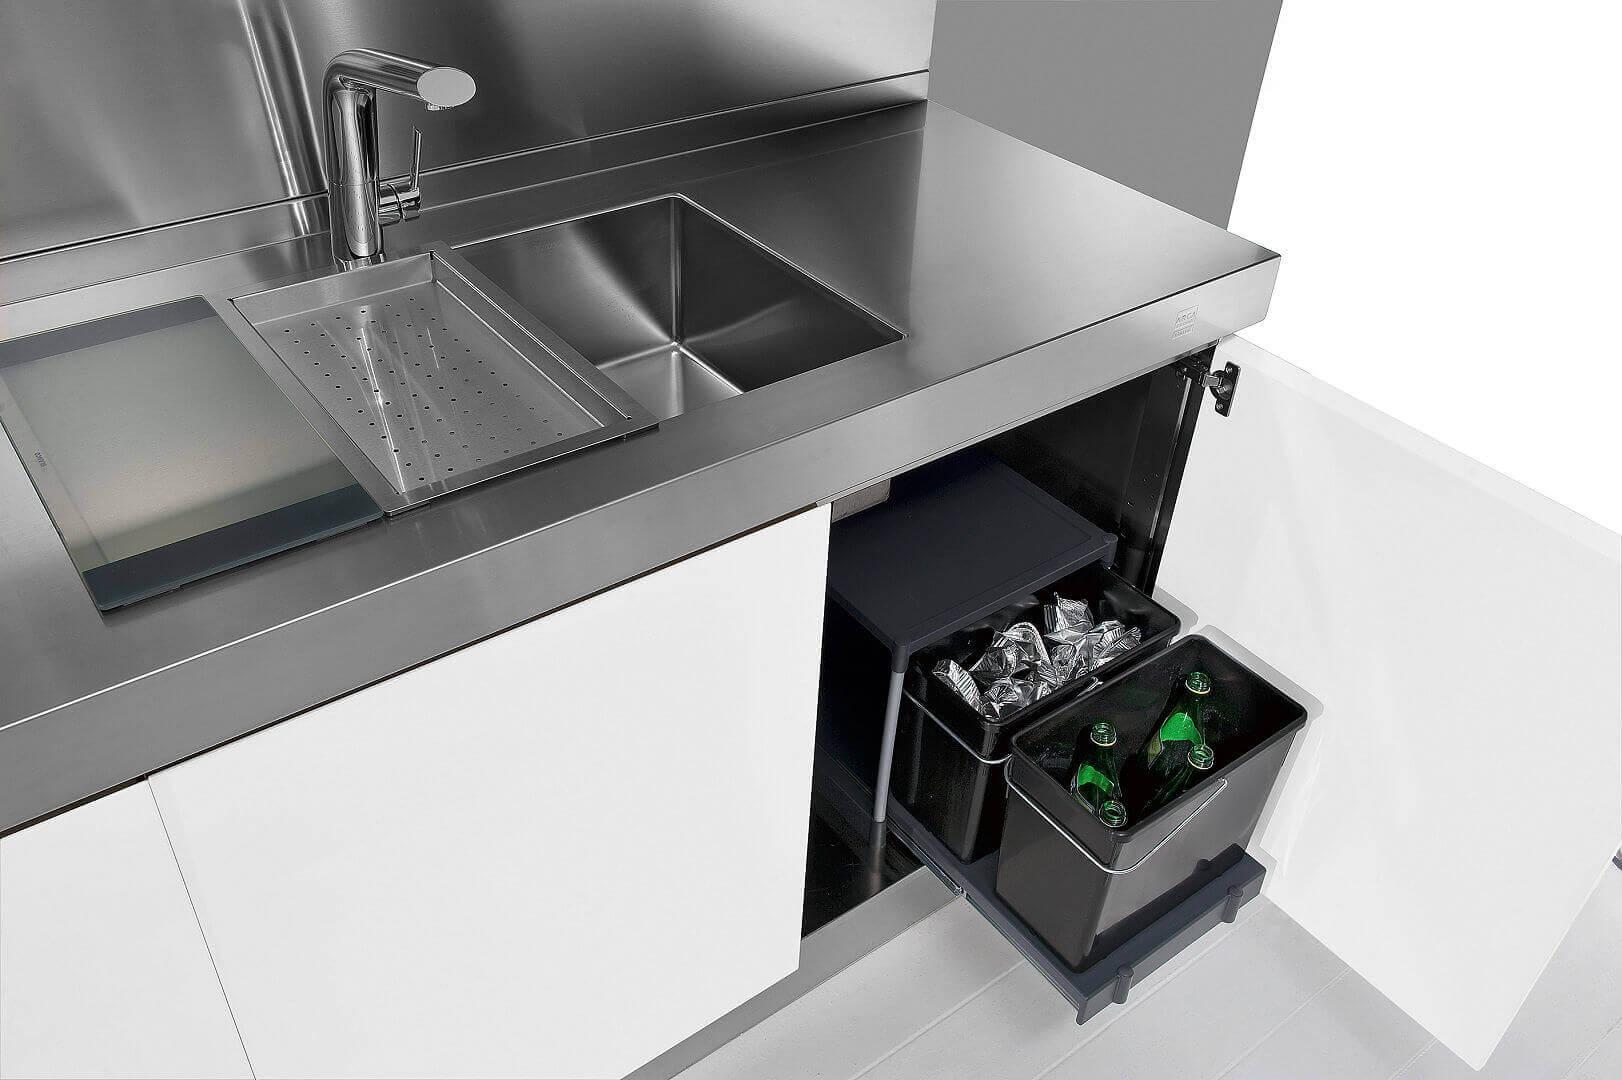 Arca Cucine Italy - Domestic stainless steel kitchens - Hd - Ark dustbin Trend